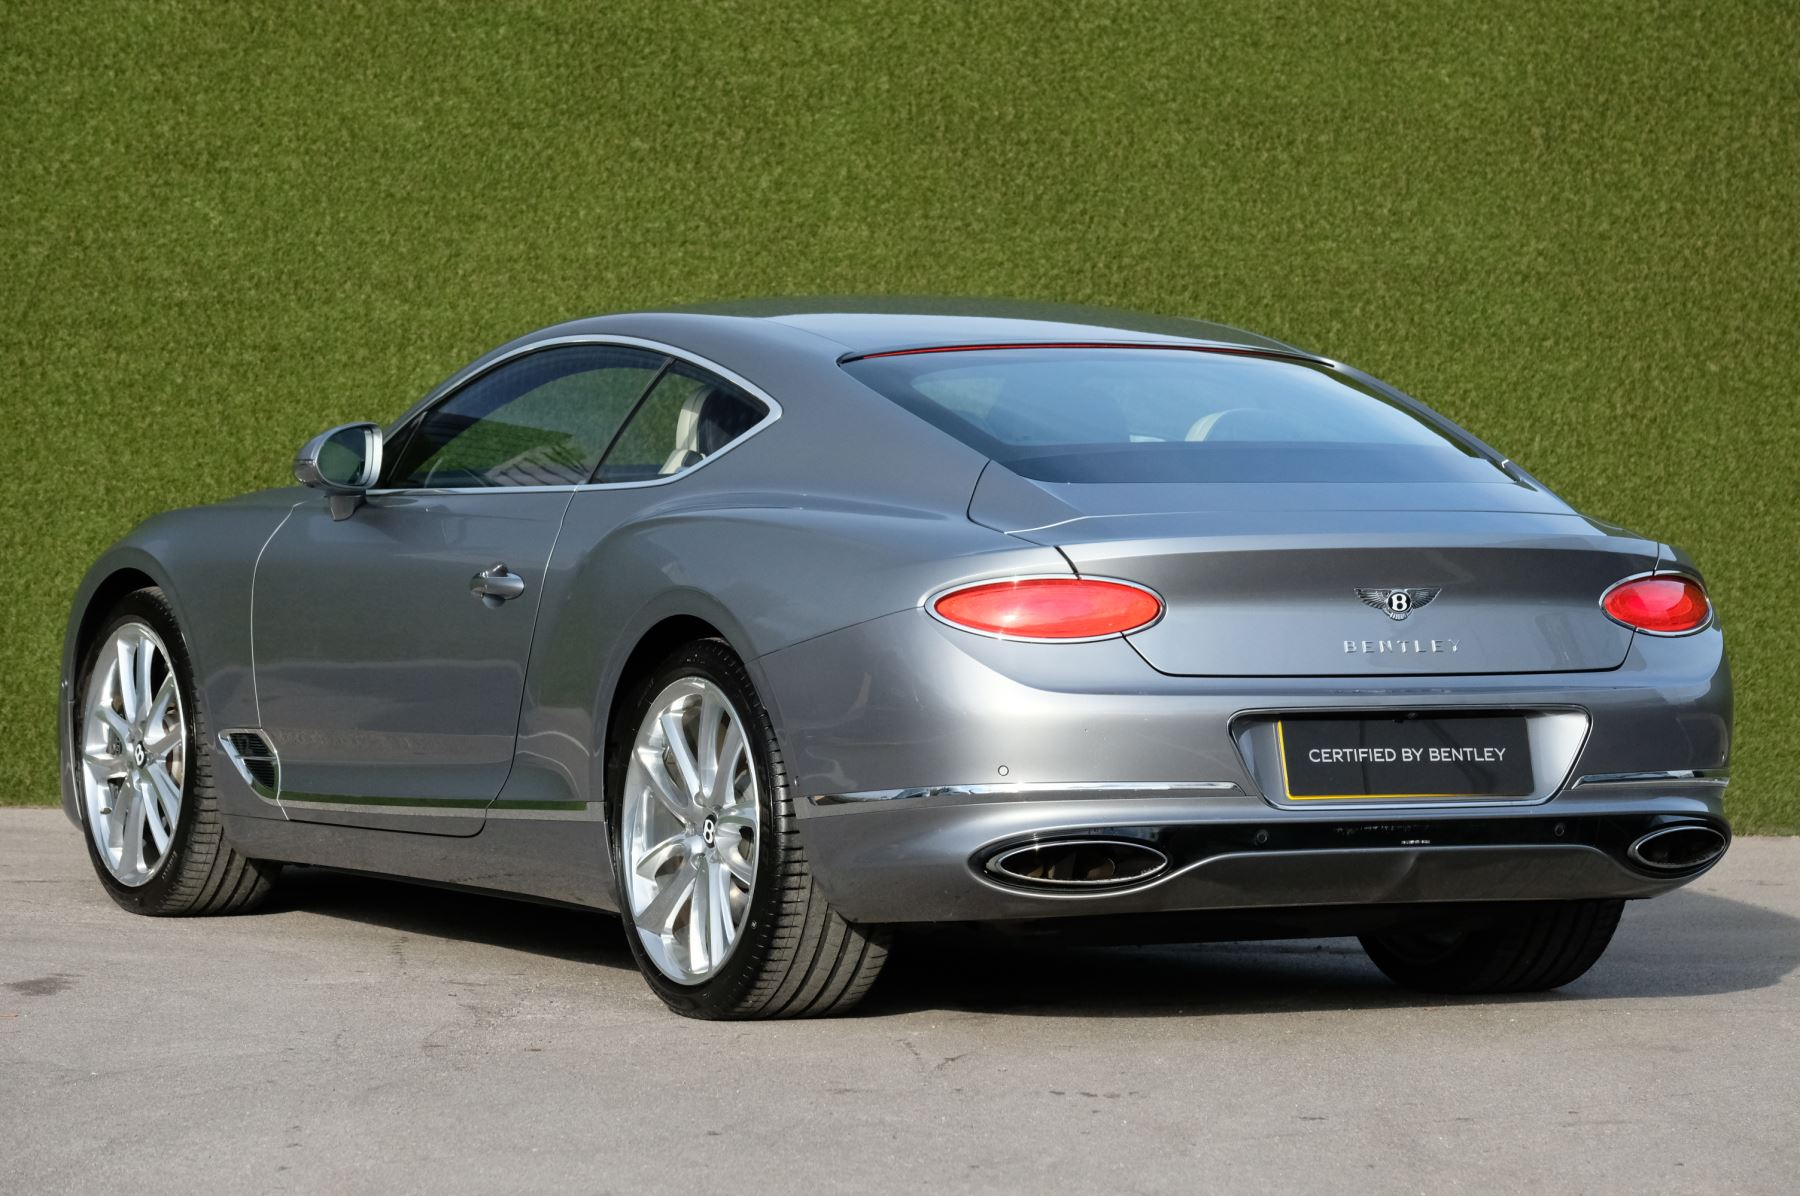 Bentley Continental GT 6.0 W12 2dr Mulliner Driving Specification image 5